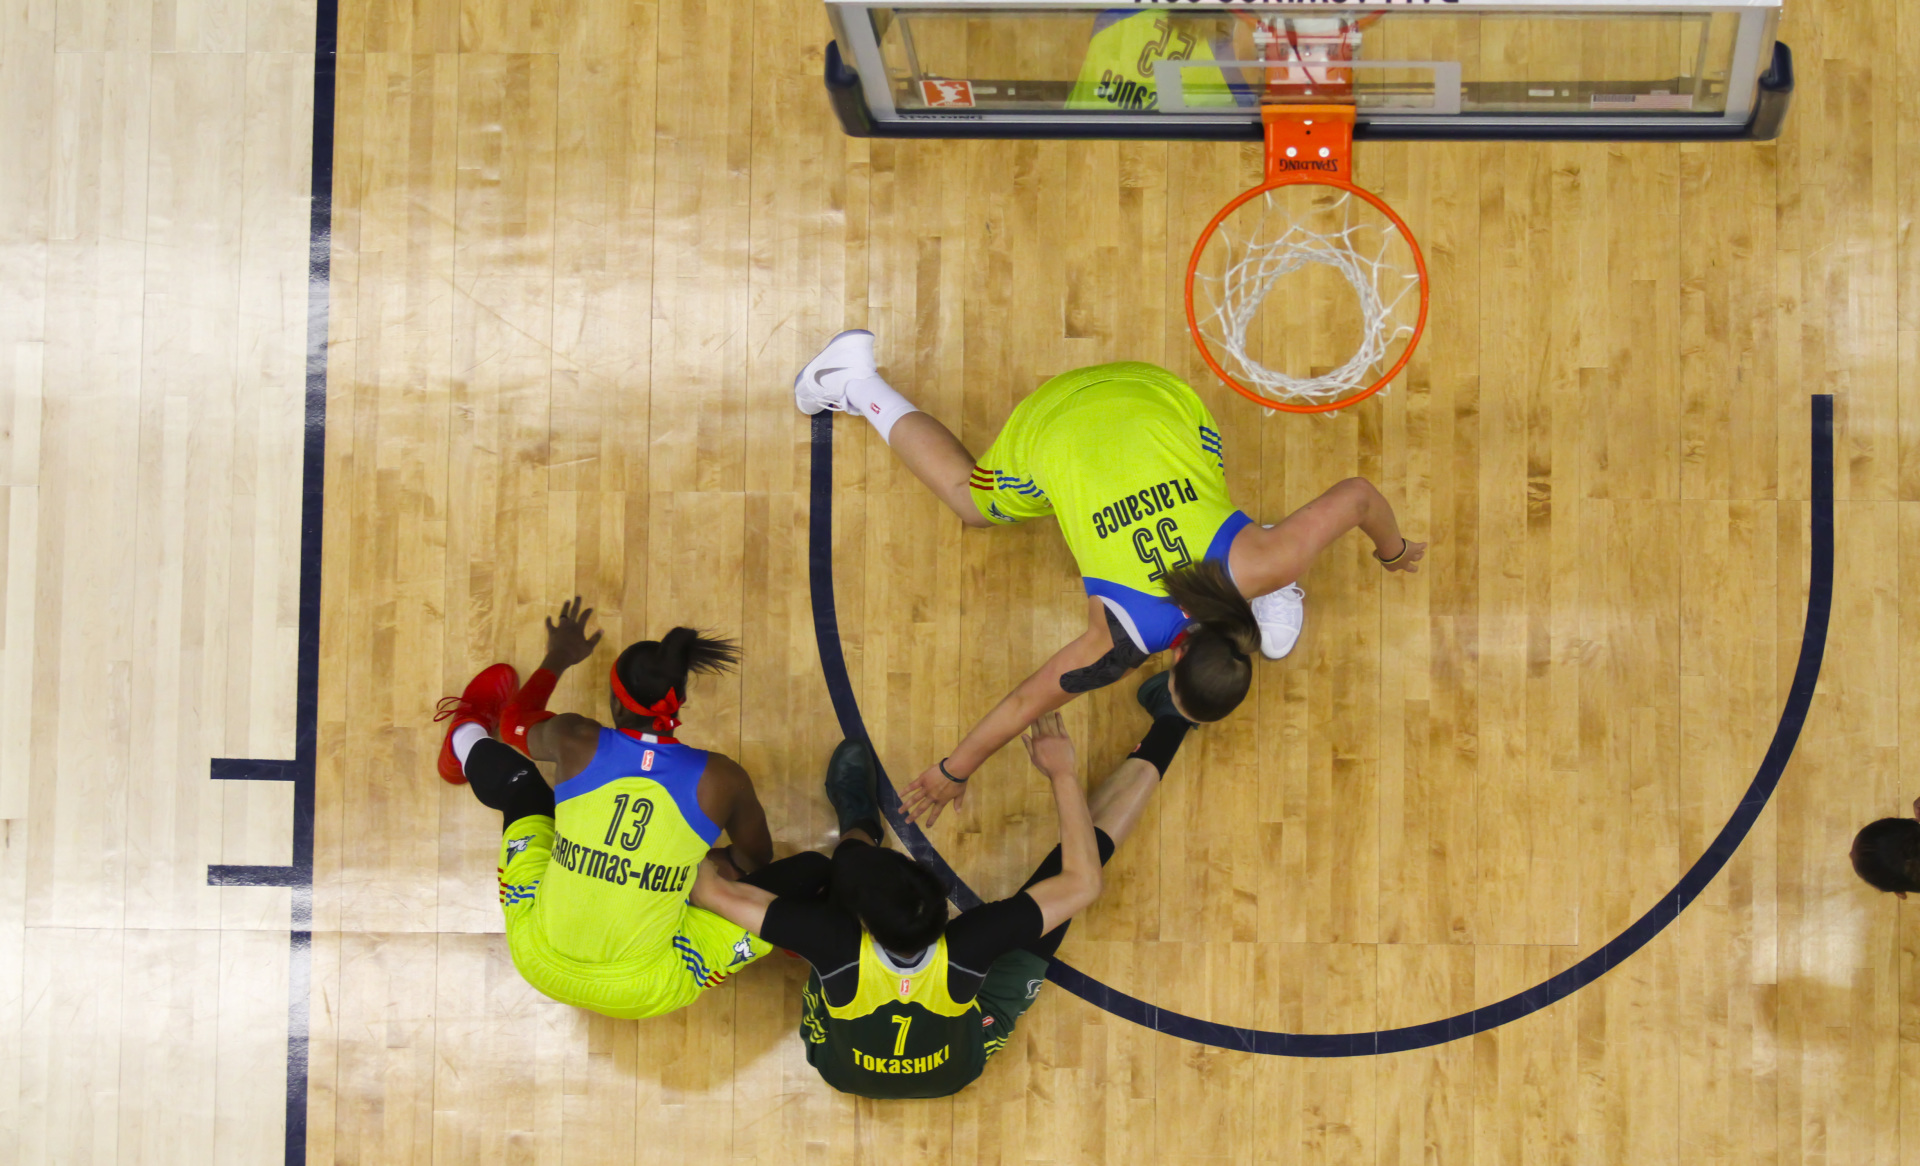 August 4, 2017 - Arlington, TX - Seattle Storm's Ramu Tokashi (7) and the Dallas Wings' Karima Christmas-Kelly (13) and Theresa Plaisance (55) fight over the ball in the game between the Dallas Wings and Seattle Storm. (Anthony Mazur/AM News Net)